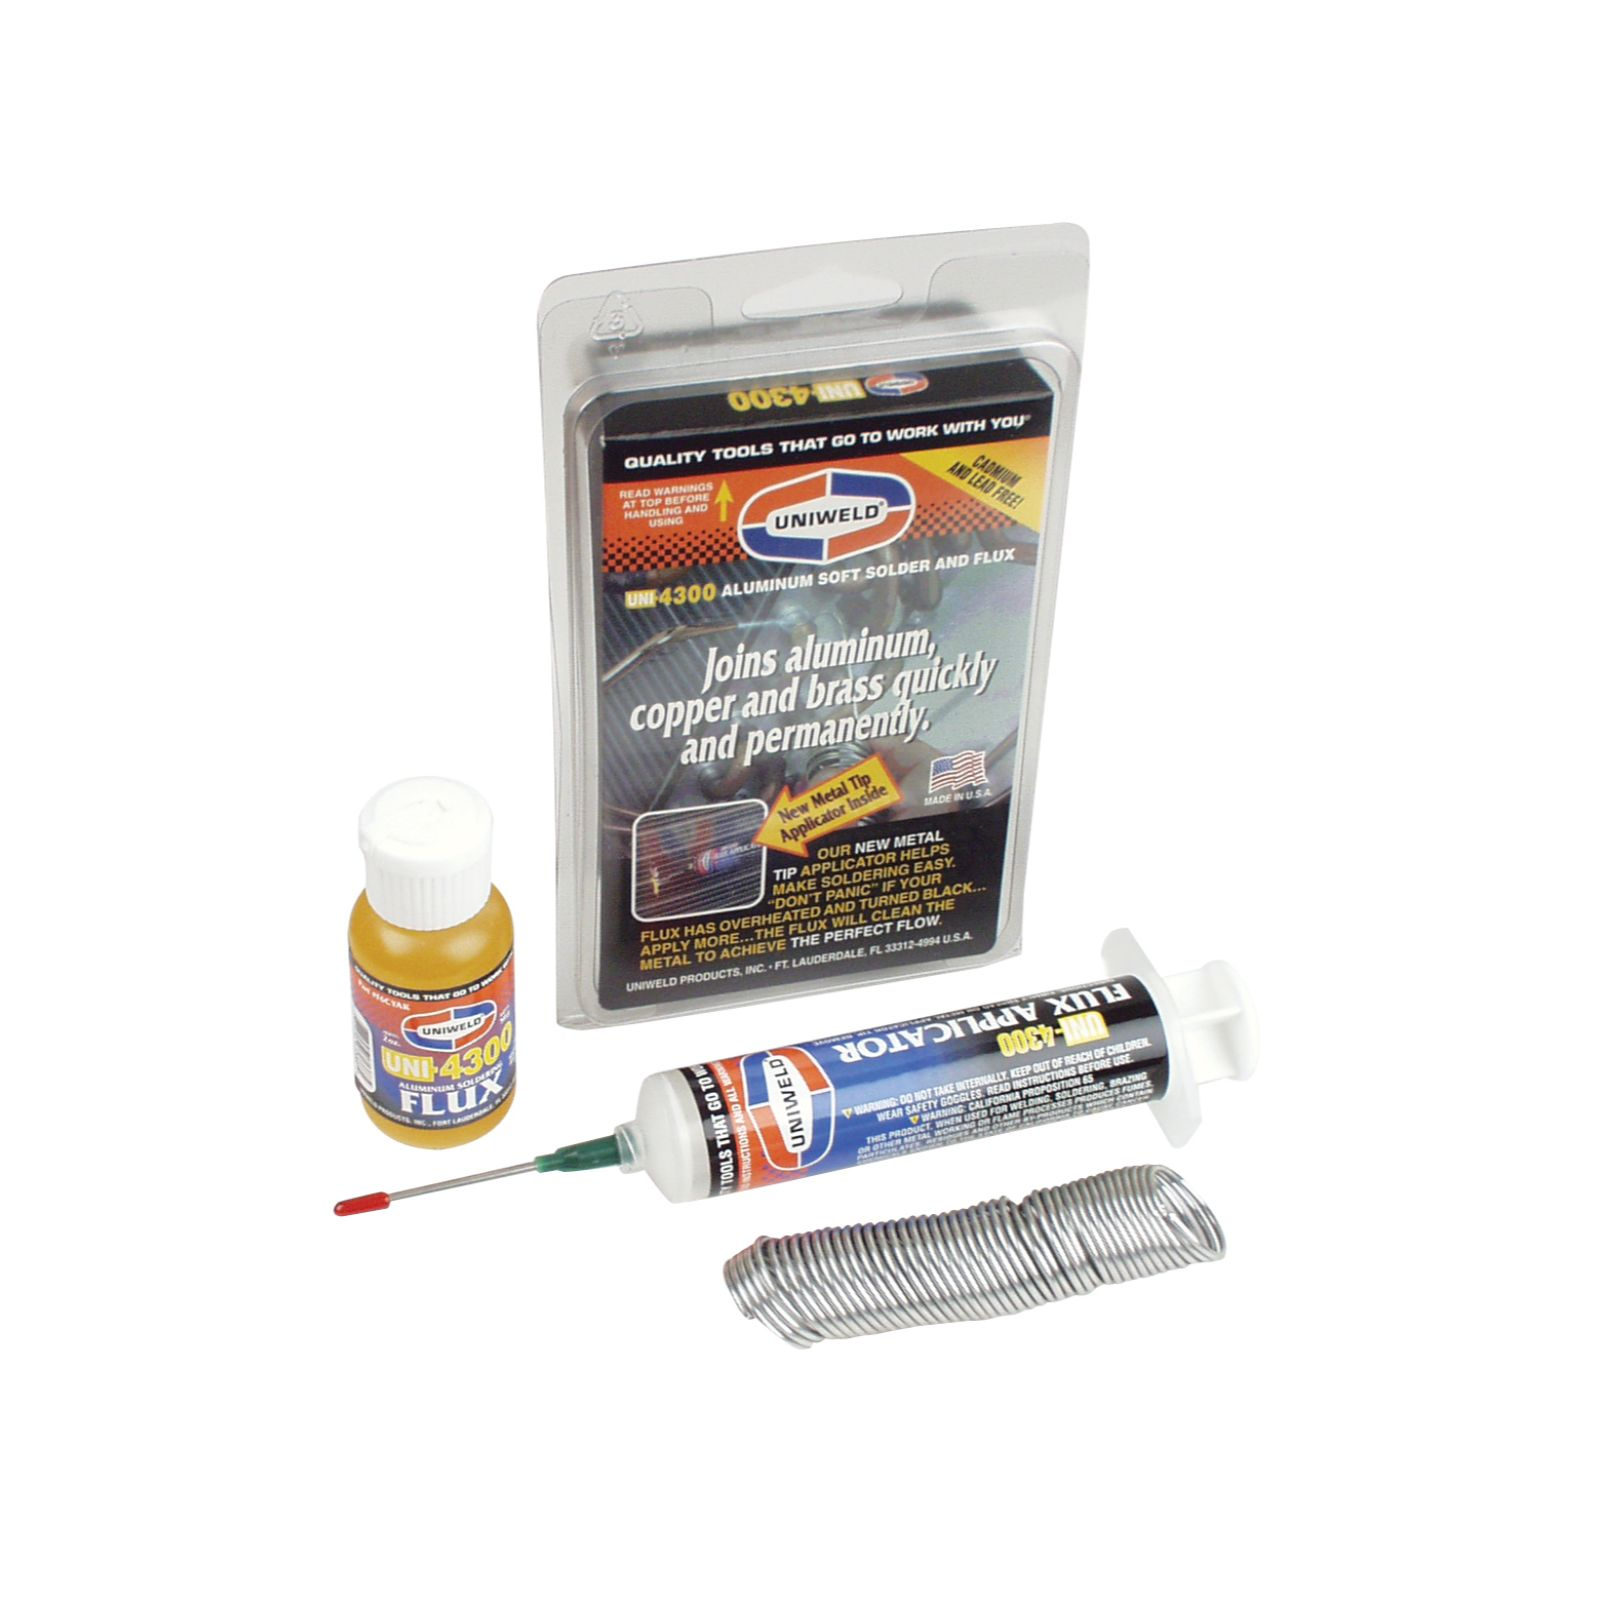 Uniweld P4KD9S - UNI-4300 Aluminum Soft Solder Flux Kit With Applicator